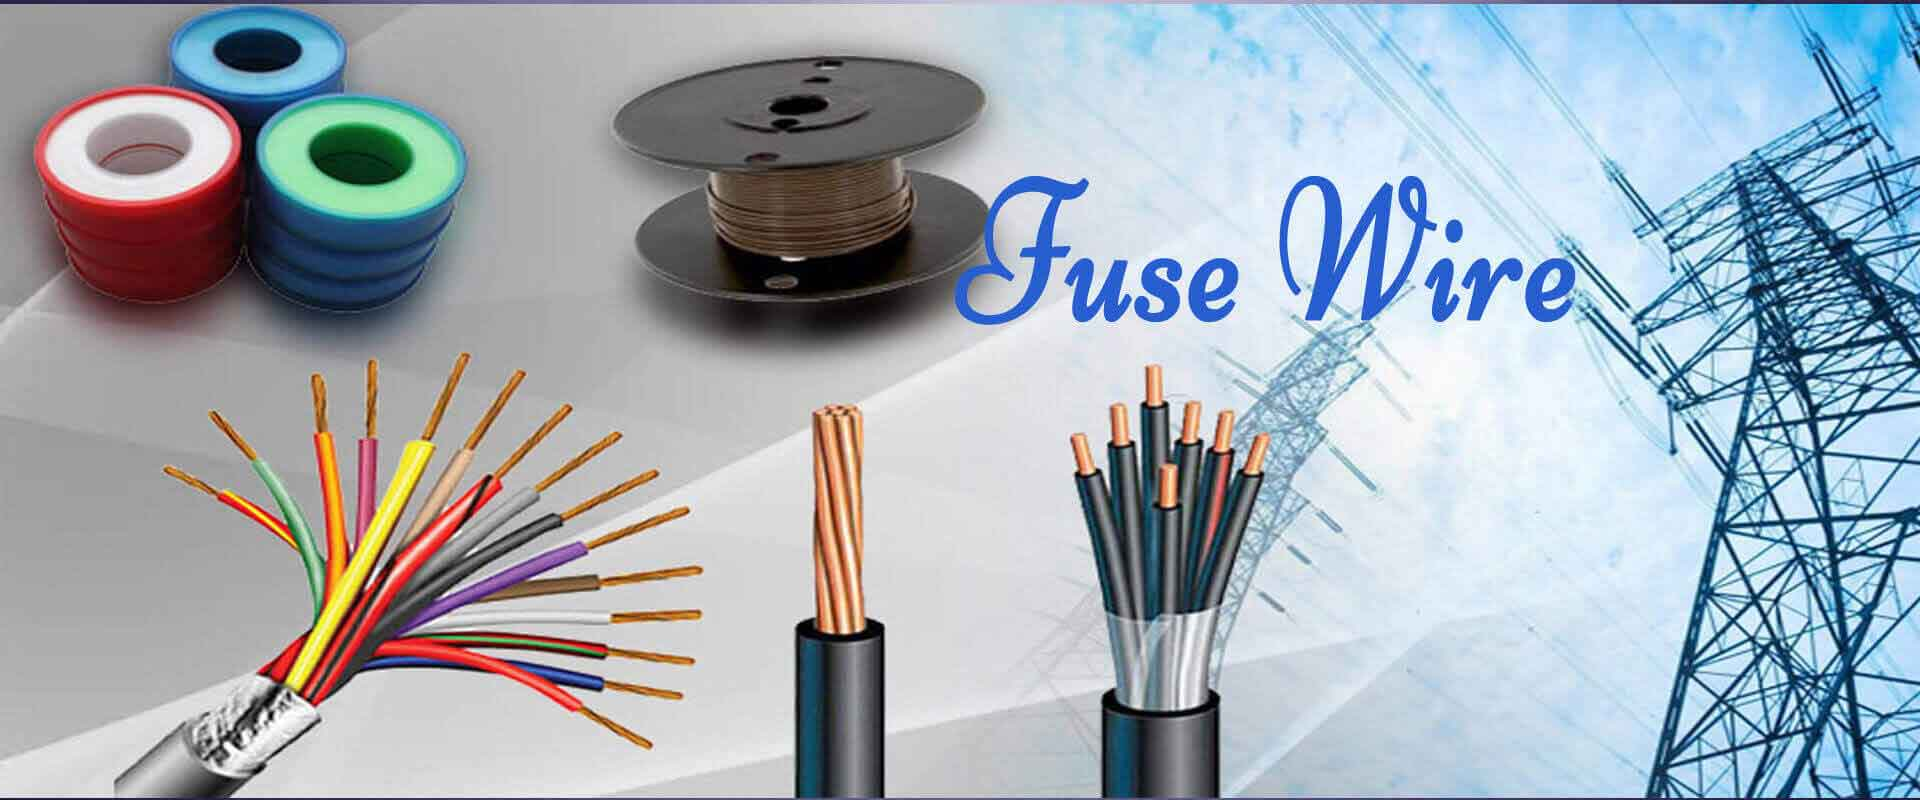 Silver Plated Copper Wire For Fuse In Jind